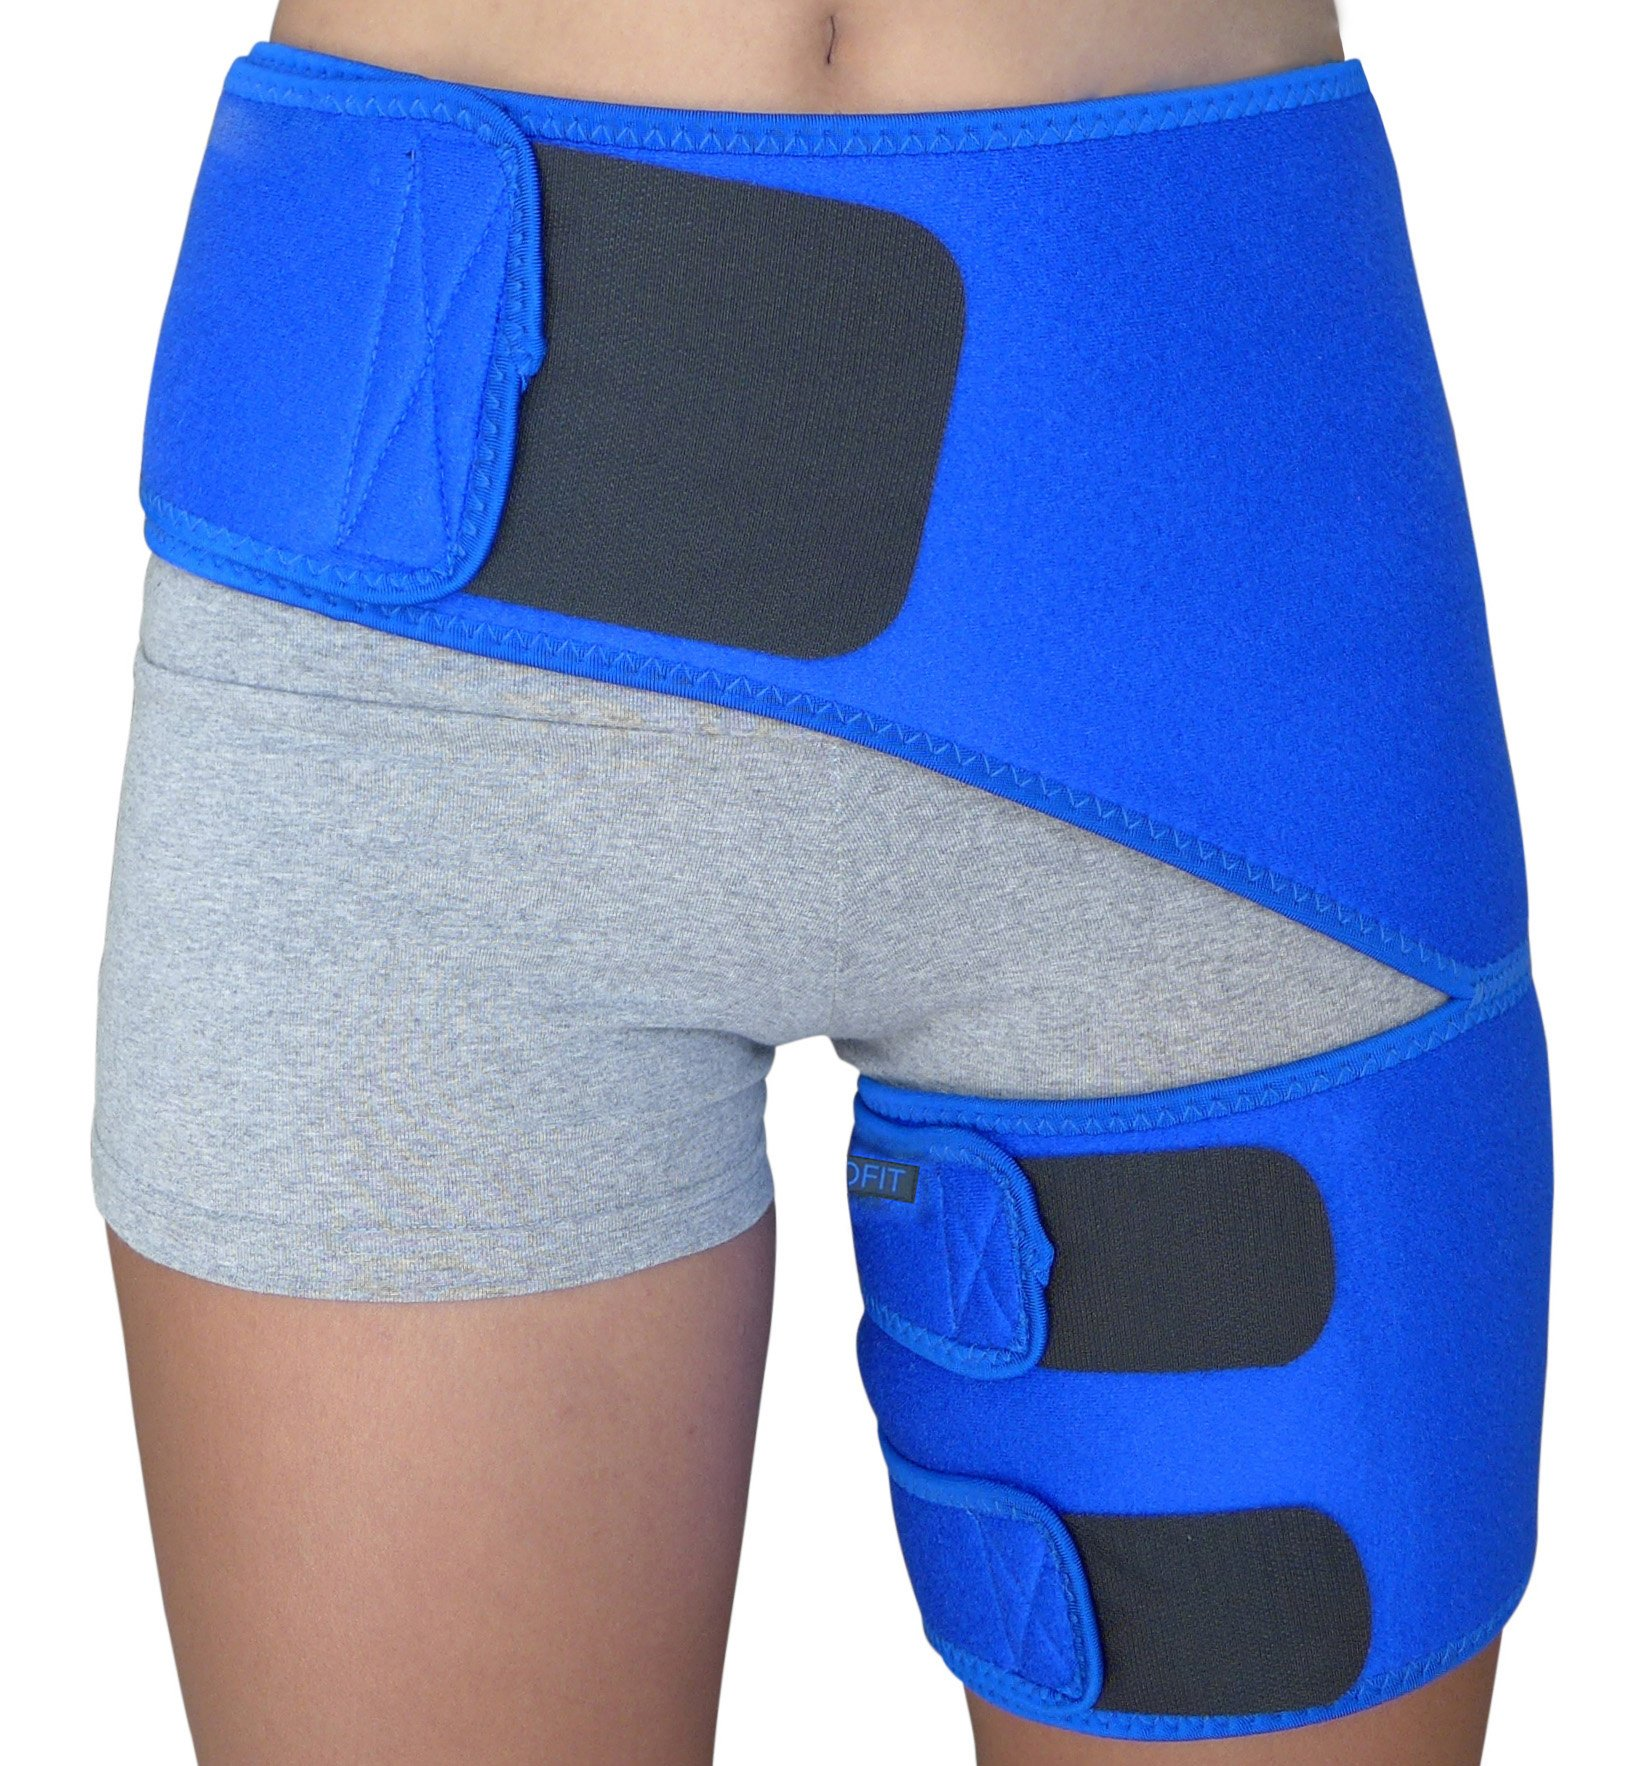 Hip Brace for Men and Women - Groin Support Wrap for Sciatica Pain Relief Thigh Hamstring Quadriceps Injuries Hip Arthritis Joint Pain Hip Flexor Pulled Muscles - Best Compression Sciatic SI Belt